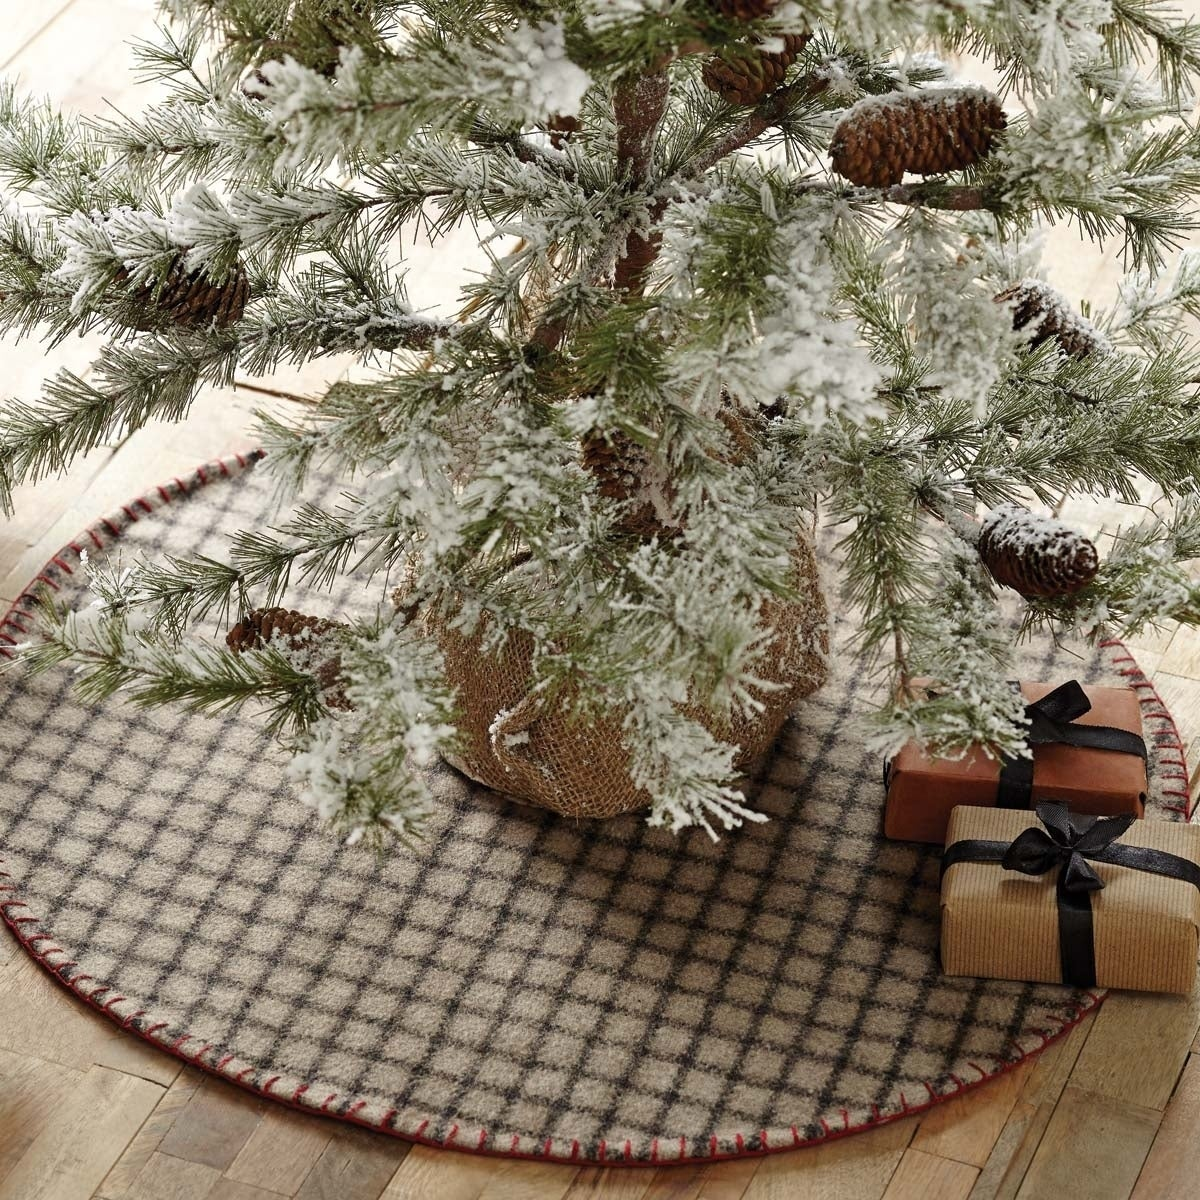 Primitive Christmas Tree.Grey Primitive Christmas Holiday Decor Vhc Weston Tree Skirt Felt Windowpane 21x21